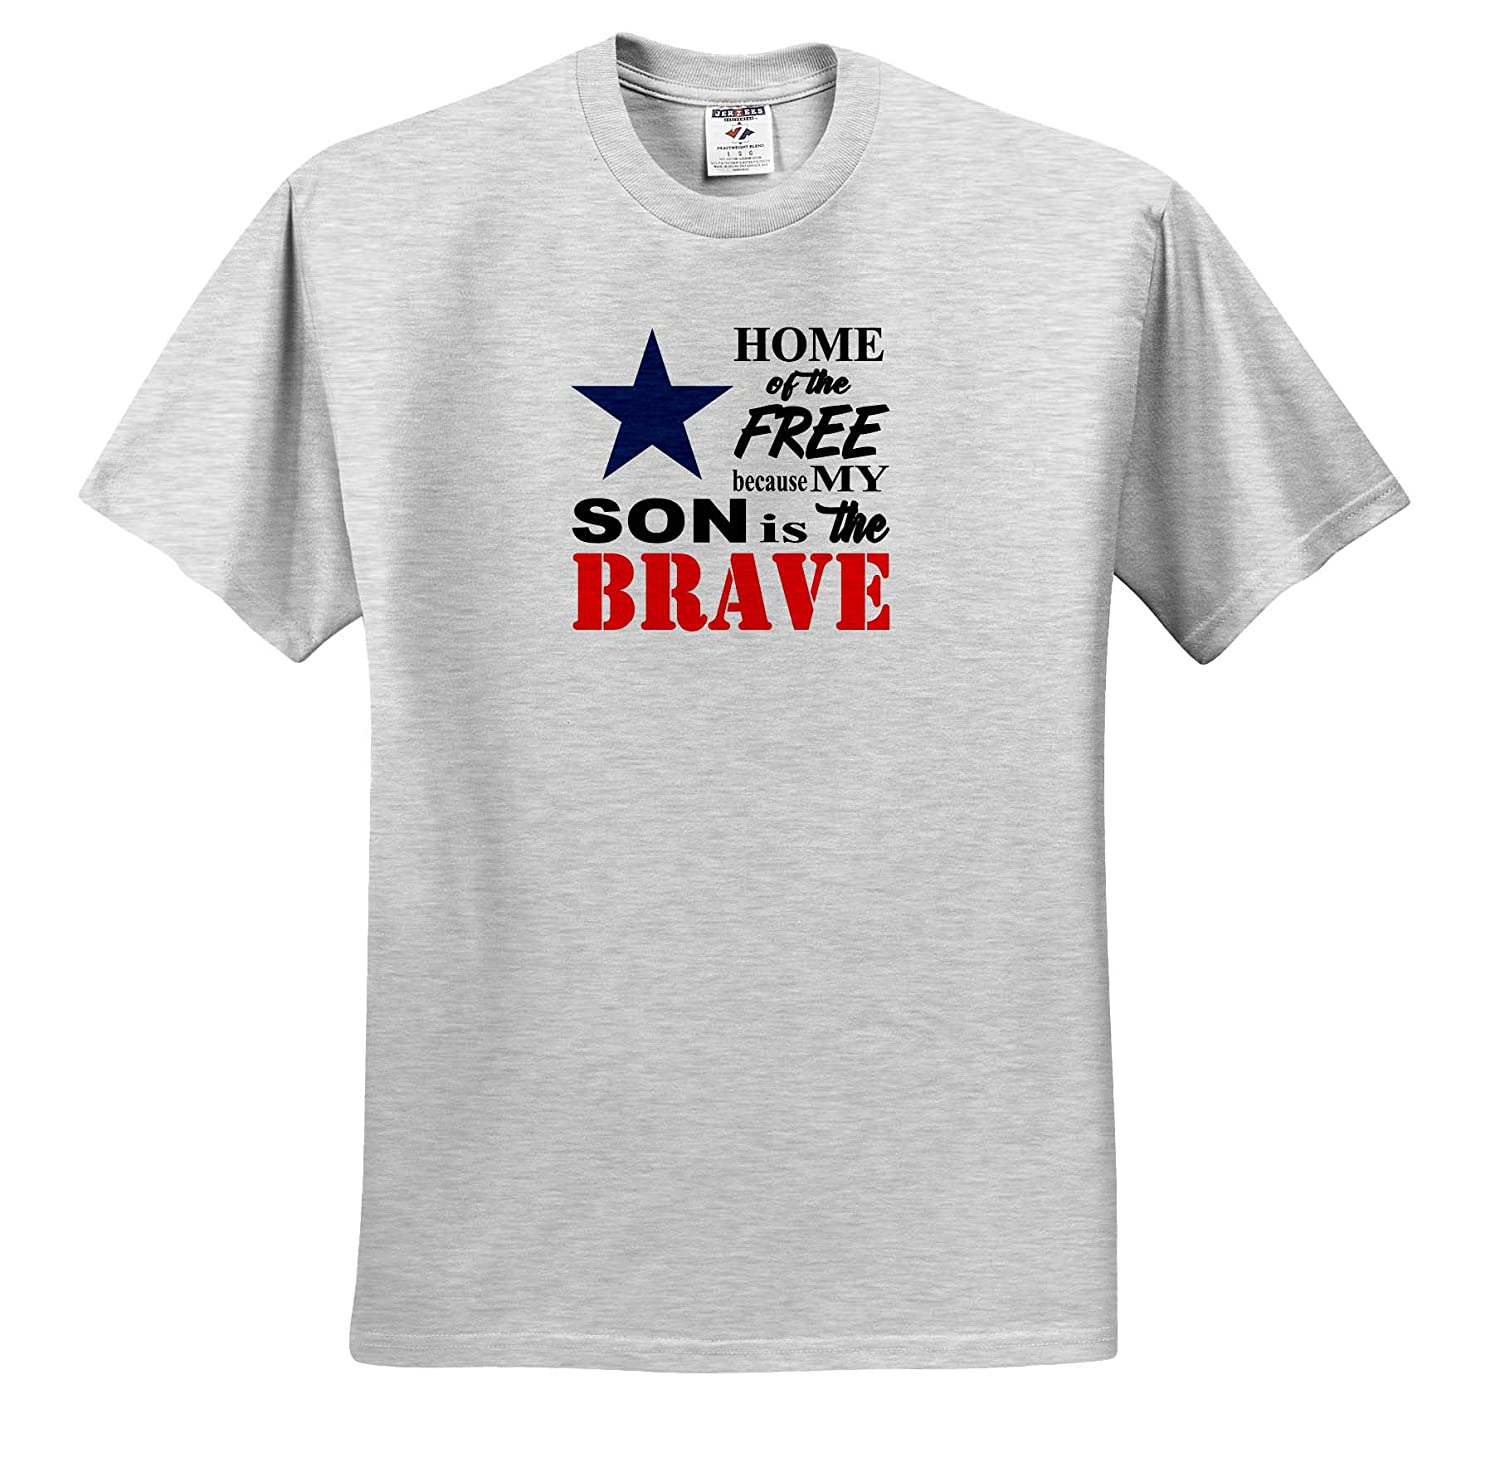 Adult T-Shirt XL 3dRose Amanda Levermann Quotes Home of The Free Because My Son is The Brave Quote ts/_319910